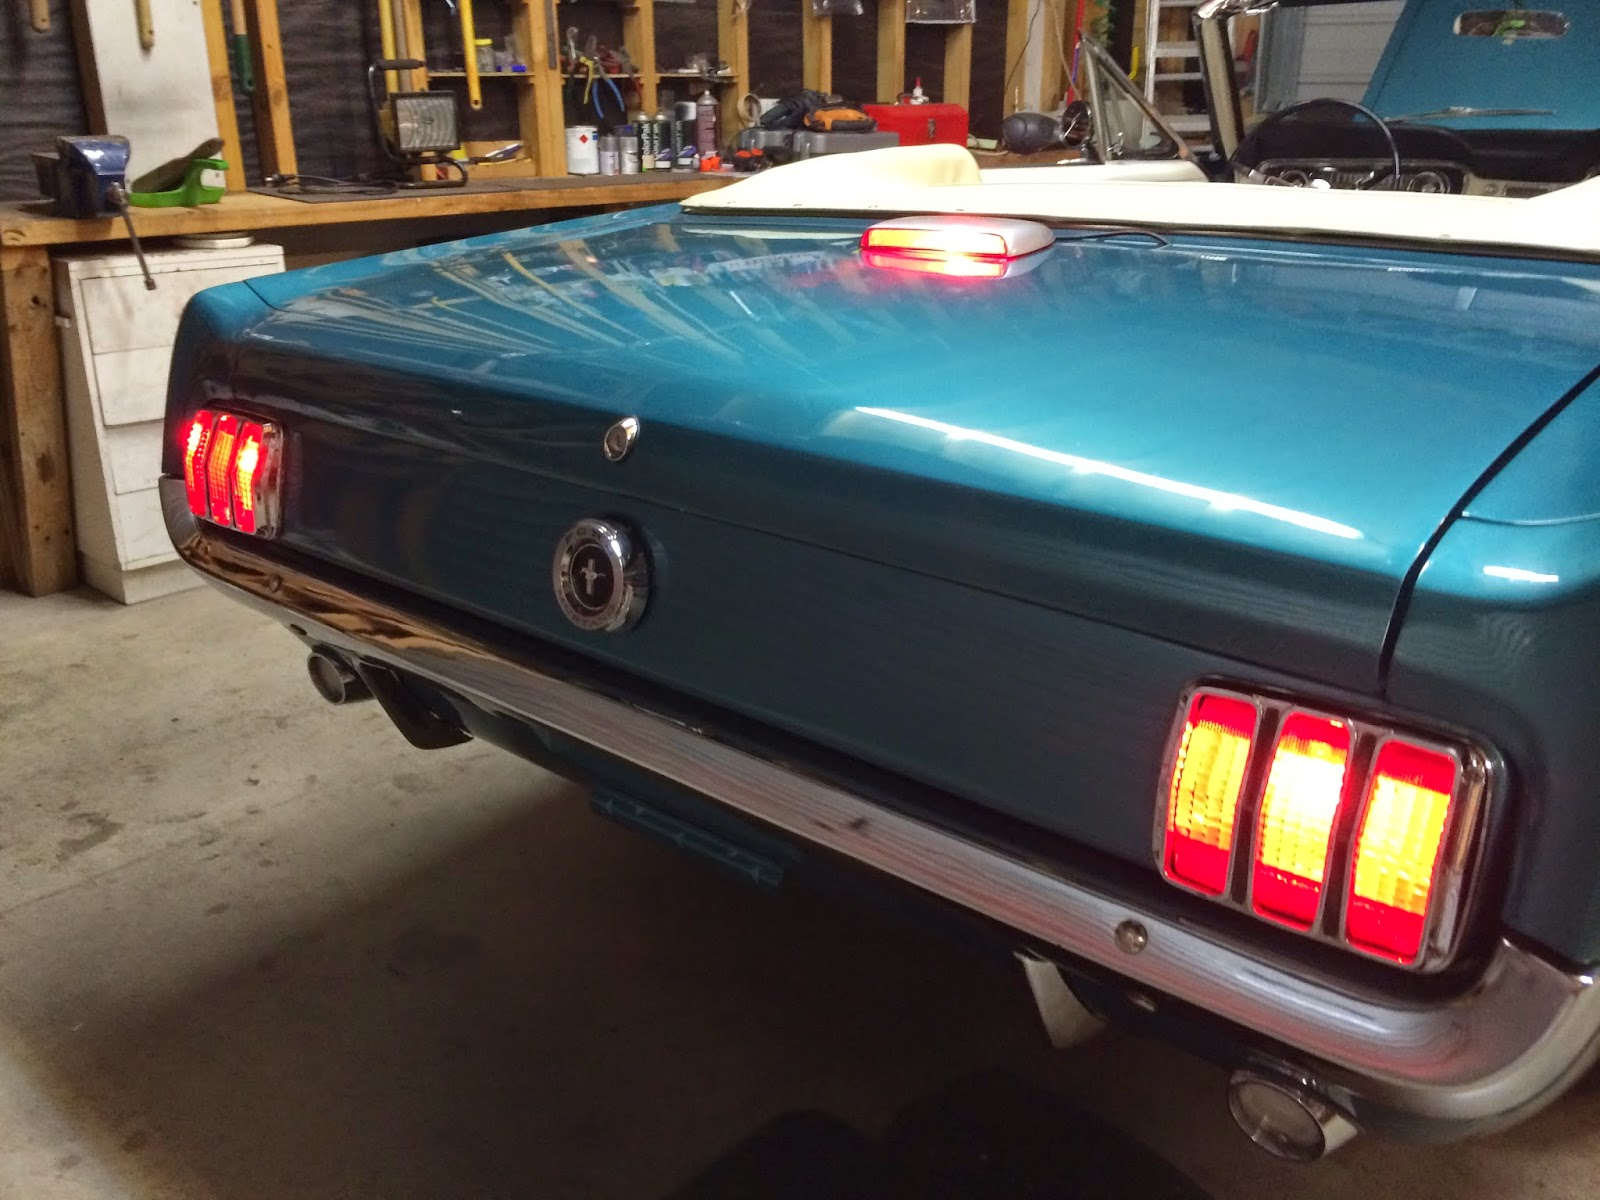 1965 convertible mustang restoration different versions of third later i came up with the idea of fitting a red led light strip that i bought on ebay and mounted it to the thin stainless strip behind the back seat aloadofball Choice Image